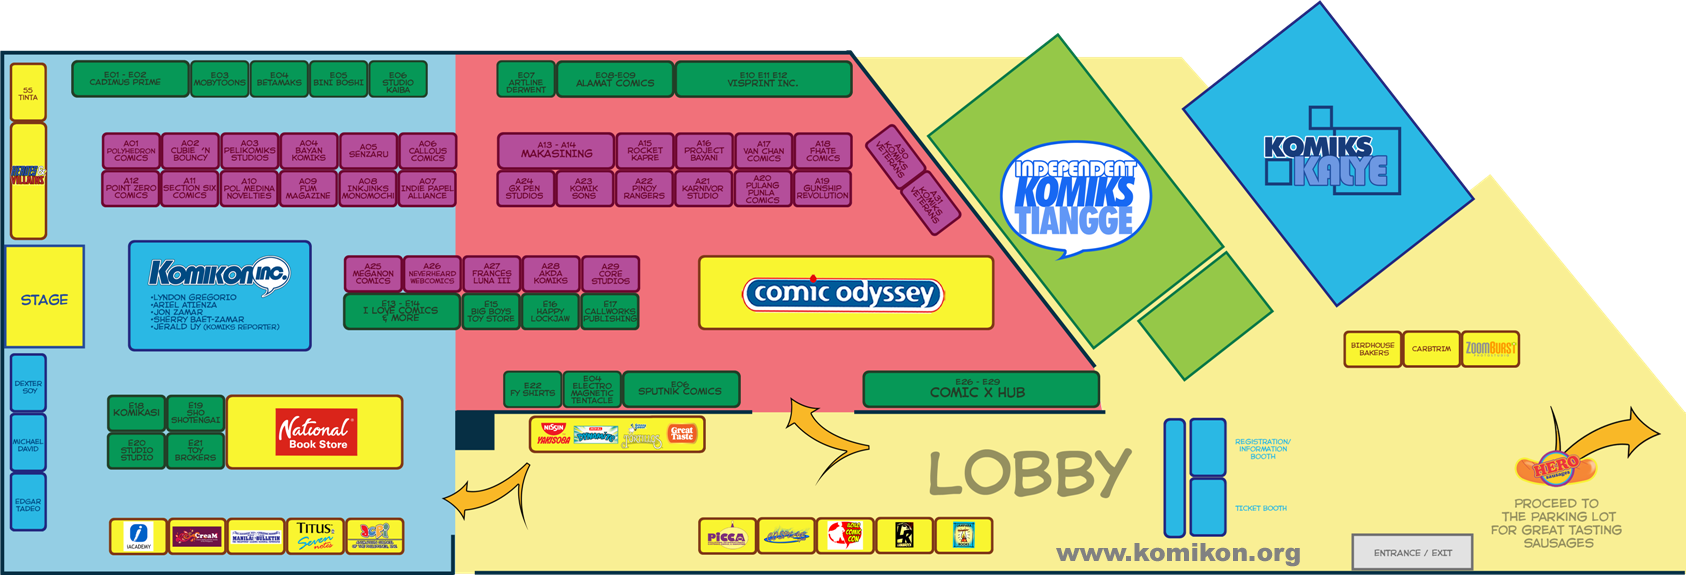 Komikon 2012 Floorplan and Directory